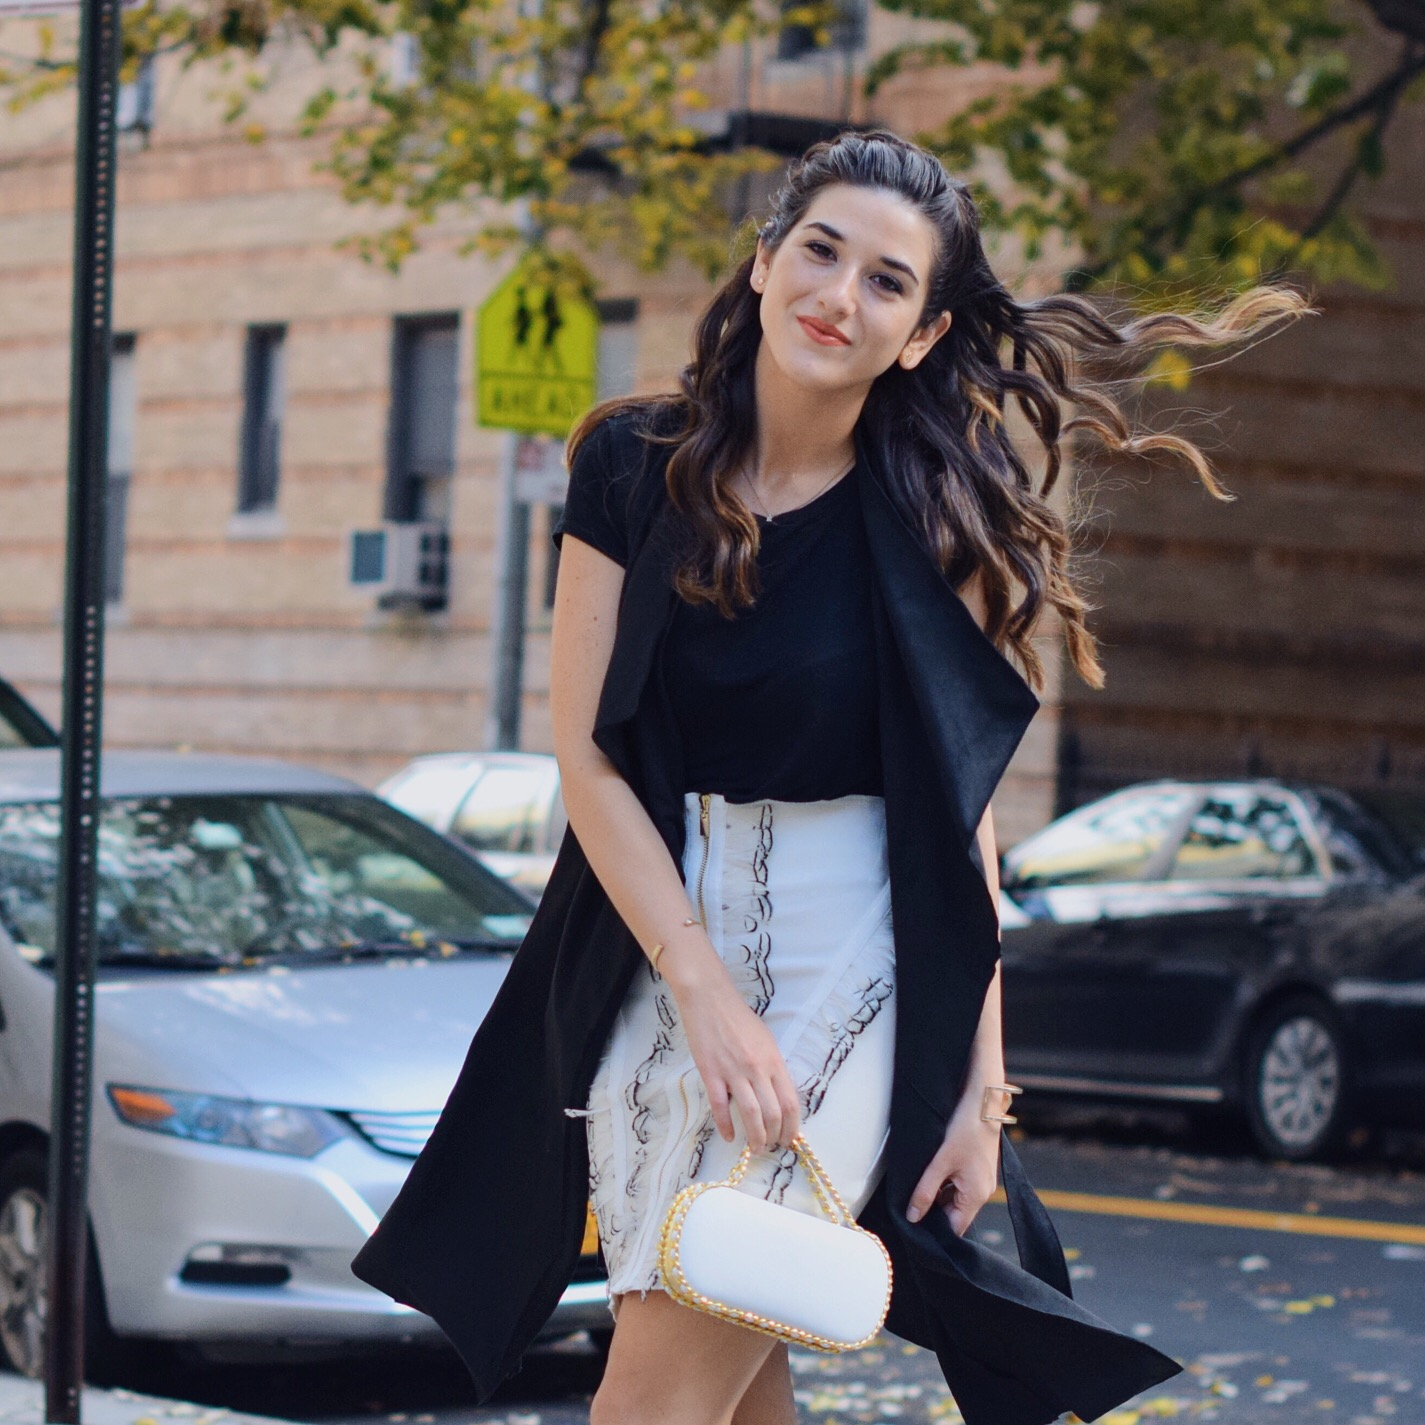 White Feather Skirt Long Black Vest Wow Couture Louboutins & Love Fashion Blog Esther Santer NYC Street Style Blogger Photoshoot Hairstyle Inspo Heels Gold Black Tee Zara Outfit OOTD Beauty Girl Women Model Fall Winter Look Erin Dana White Minaudiere.JPG